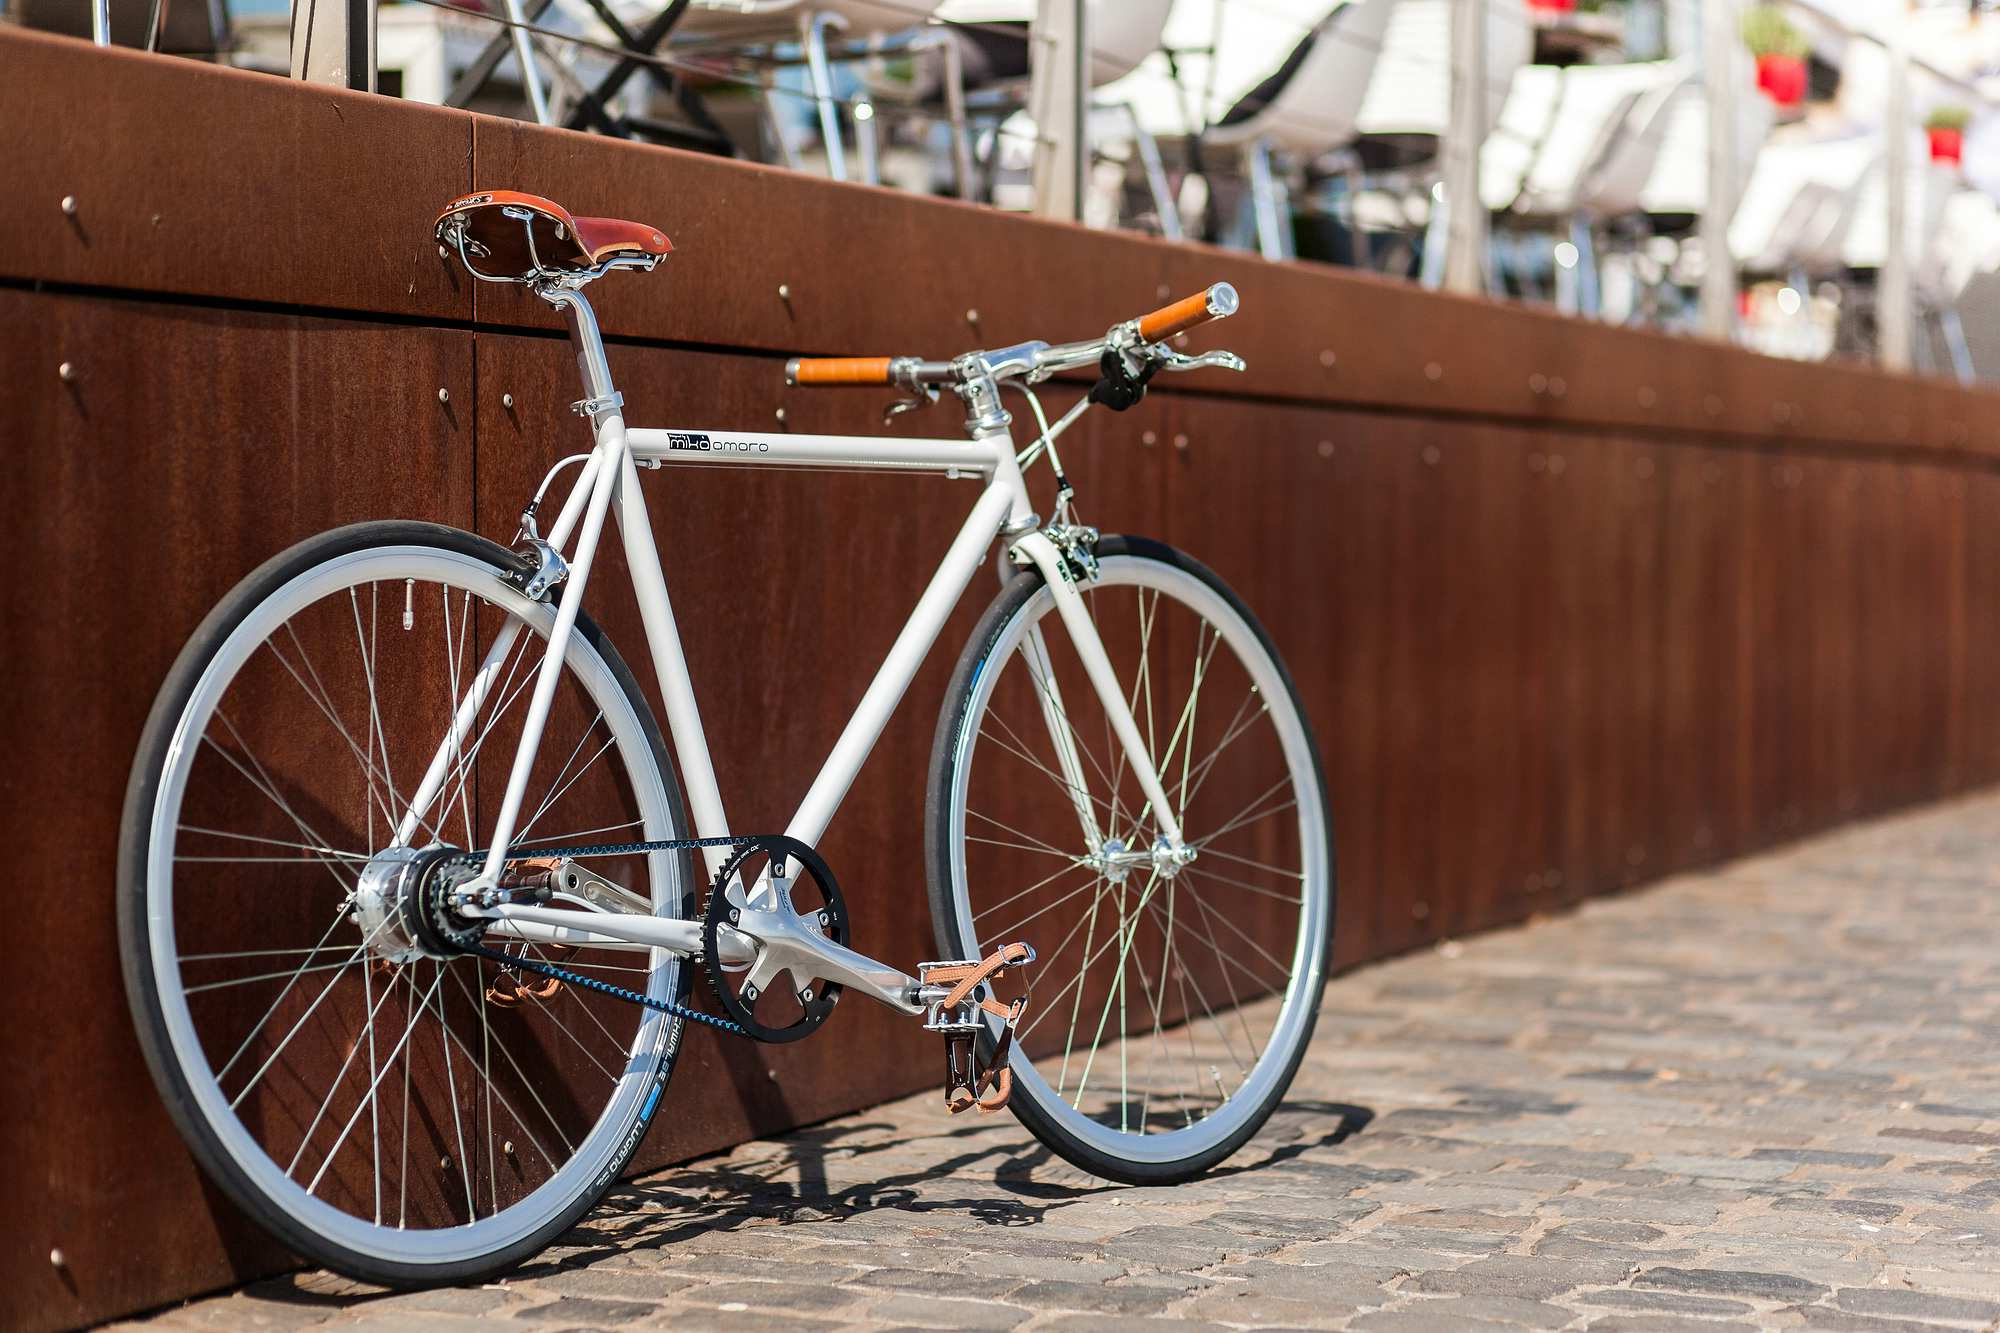 Urban Bike indy white 8 Speed, belt drive, Brooks